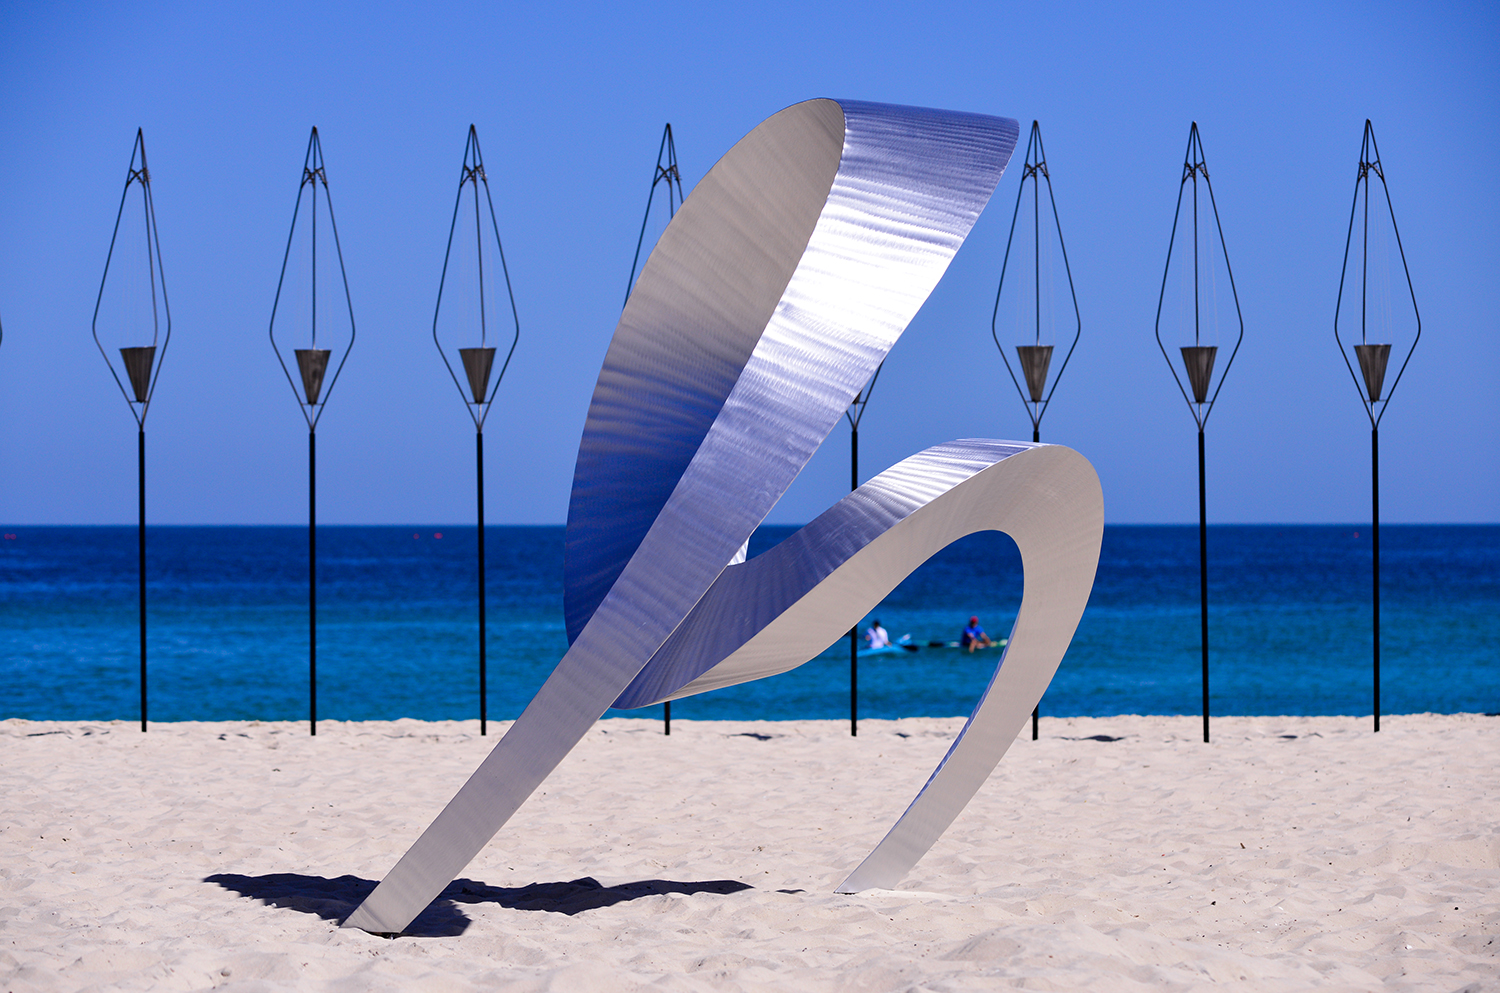 Johannes Pannekoek, signature, Sculpture by the Sea, Cottesloe 2014. Photo Clyde Yee.